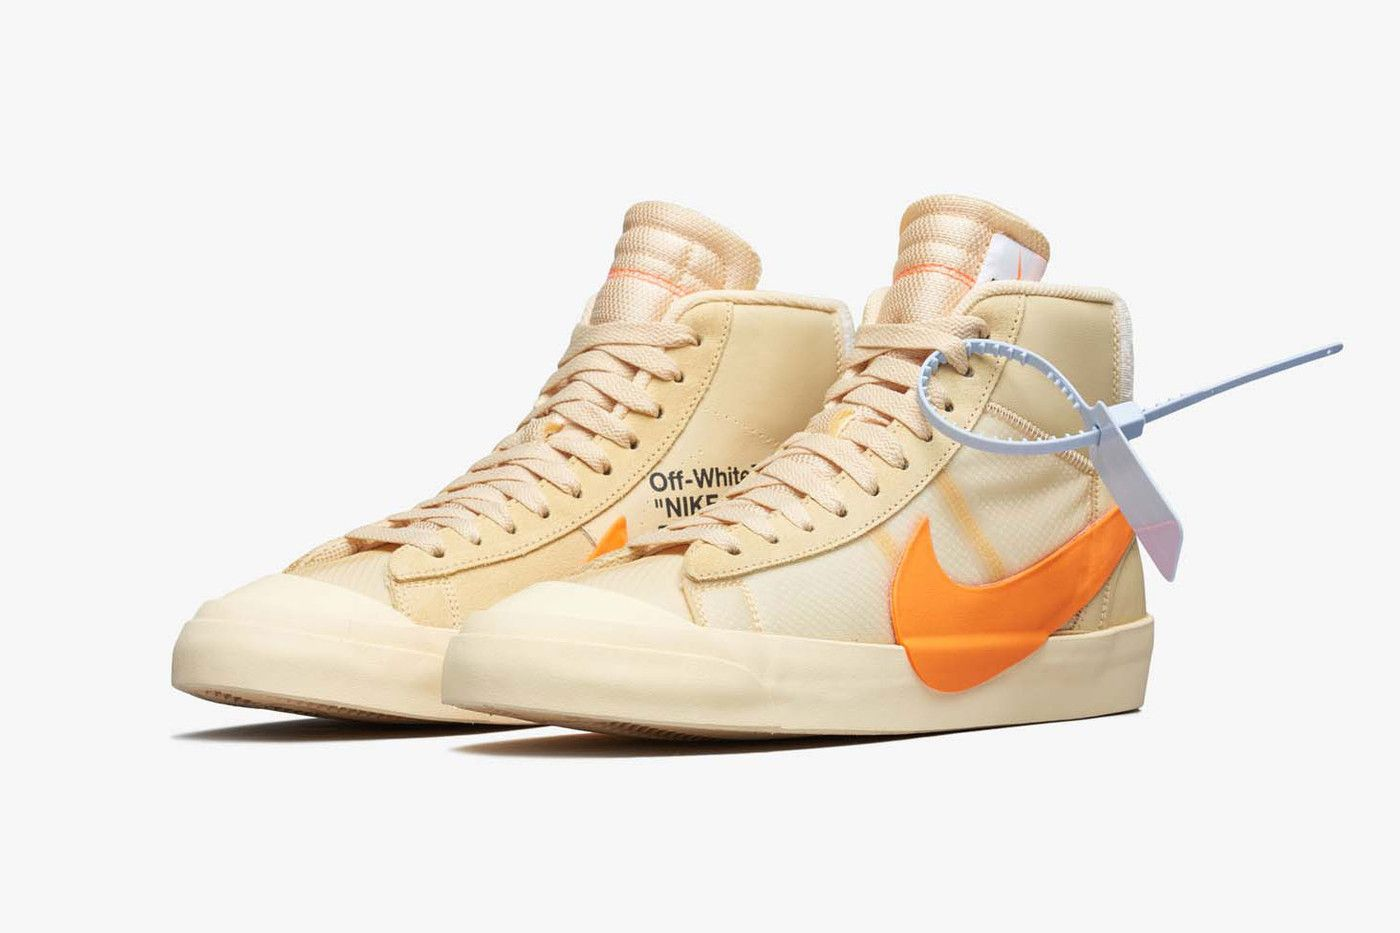 909e9853 Off White Nike Blazer Spooky Pack Official Pics grim reaper All Hallows Eve  leak release date drop virgil abloh collaboration